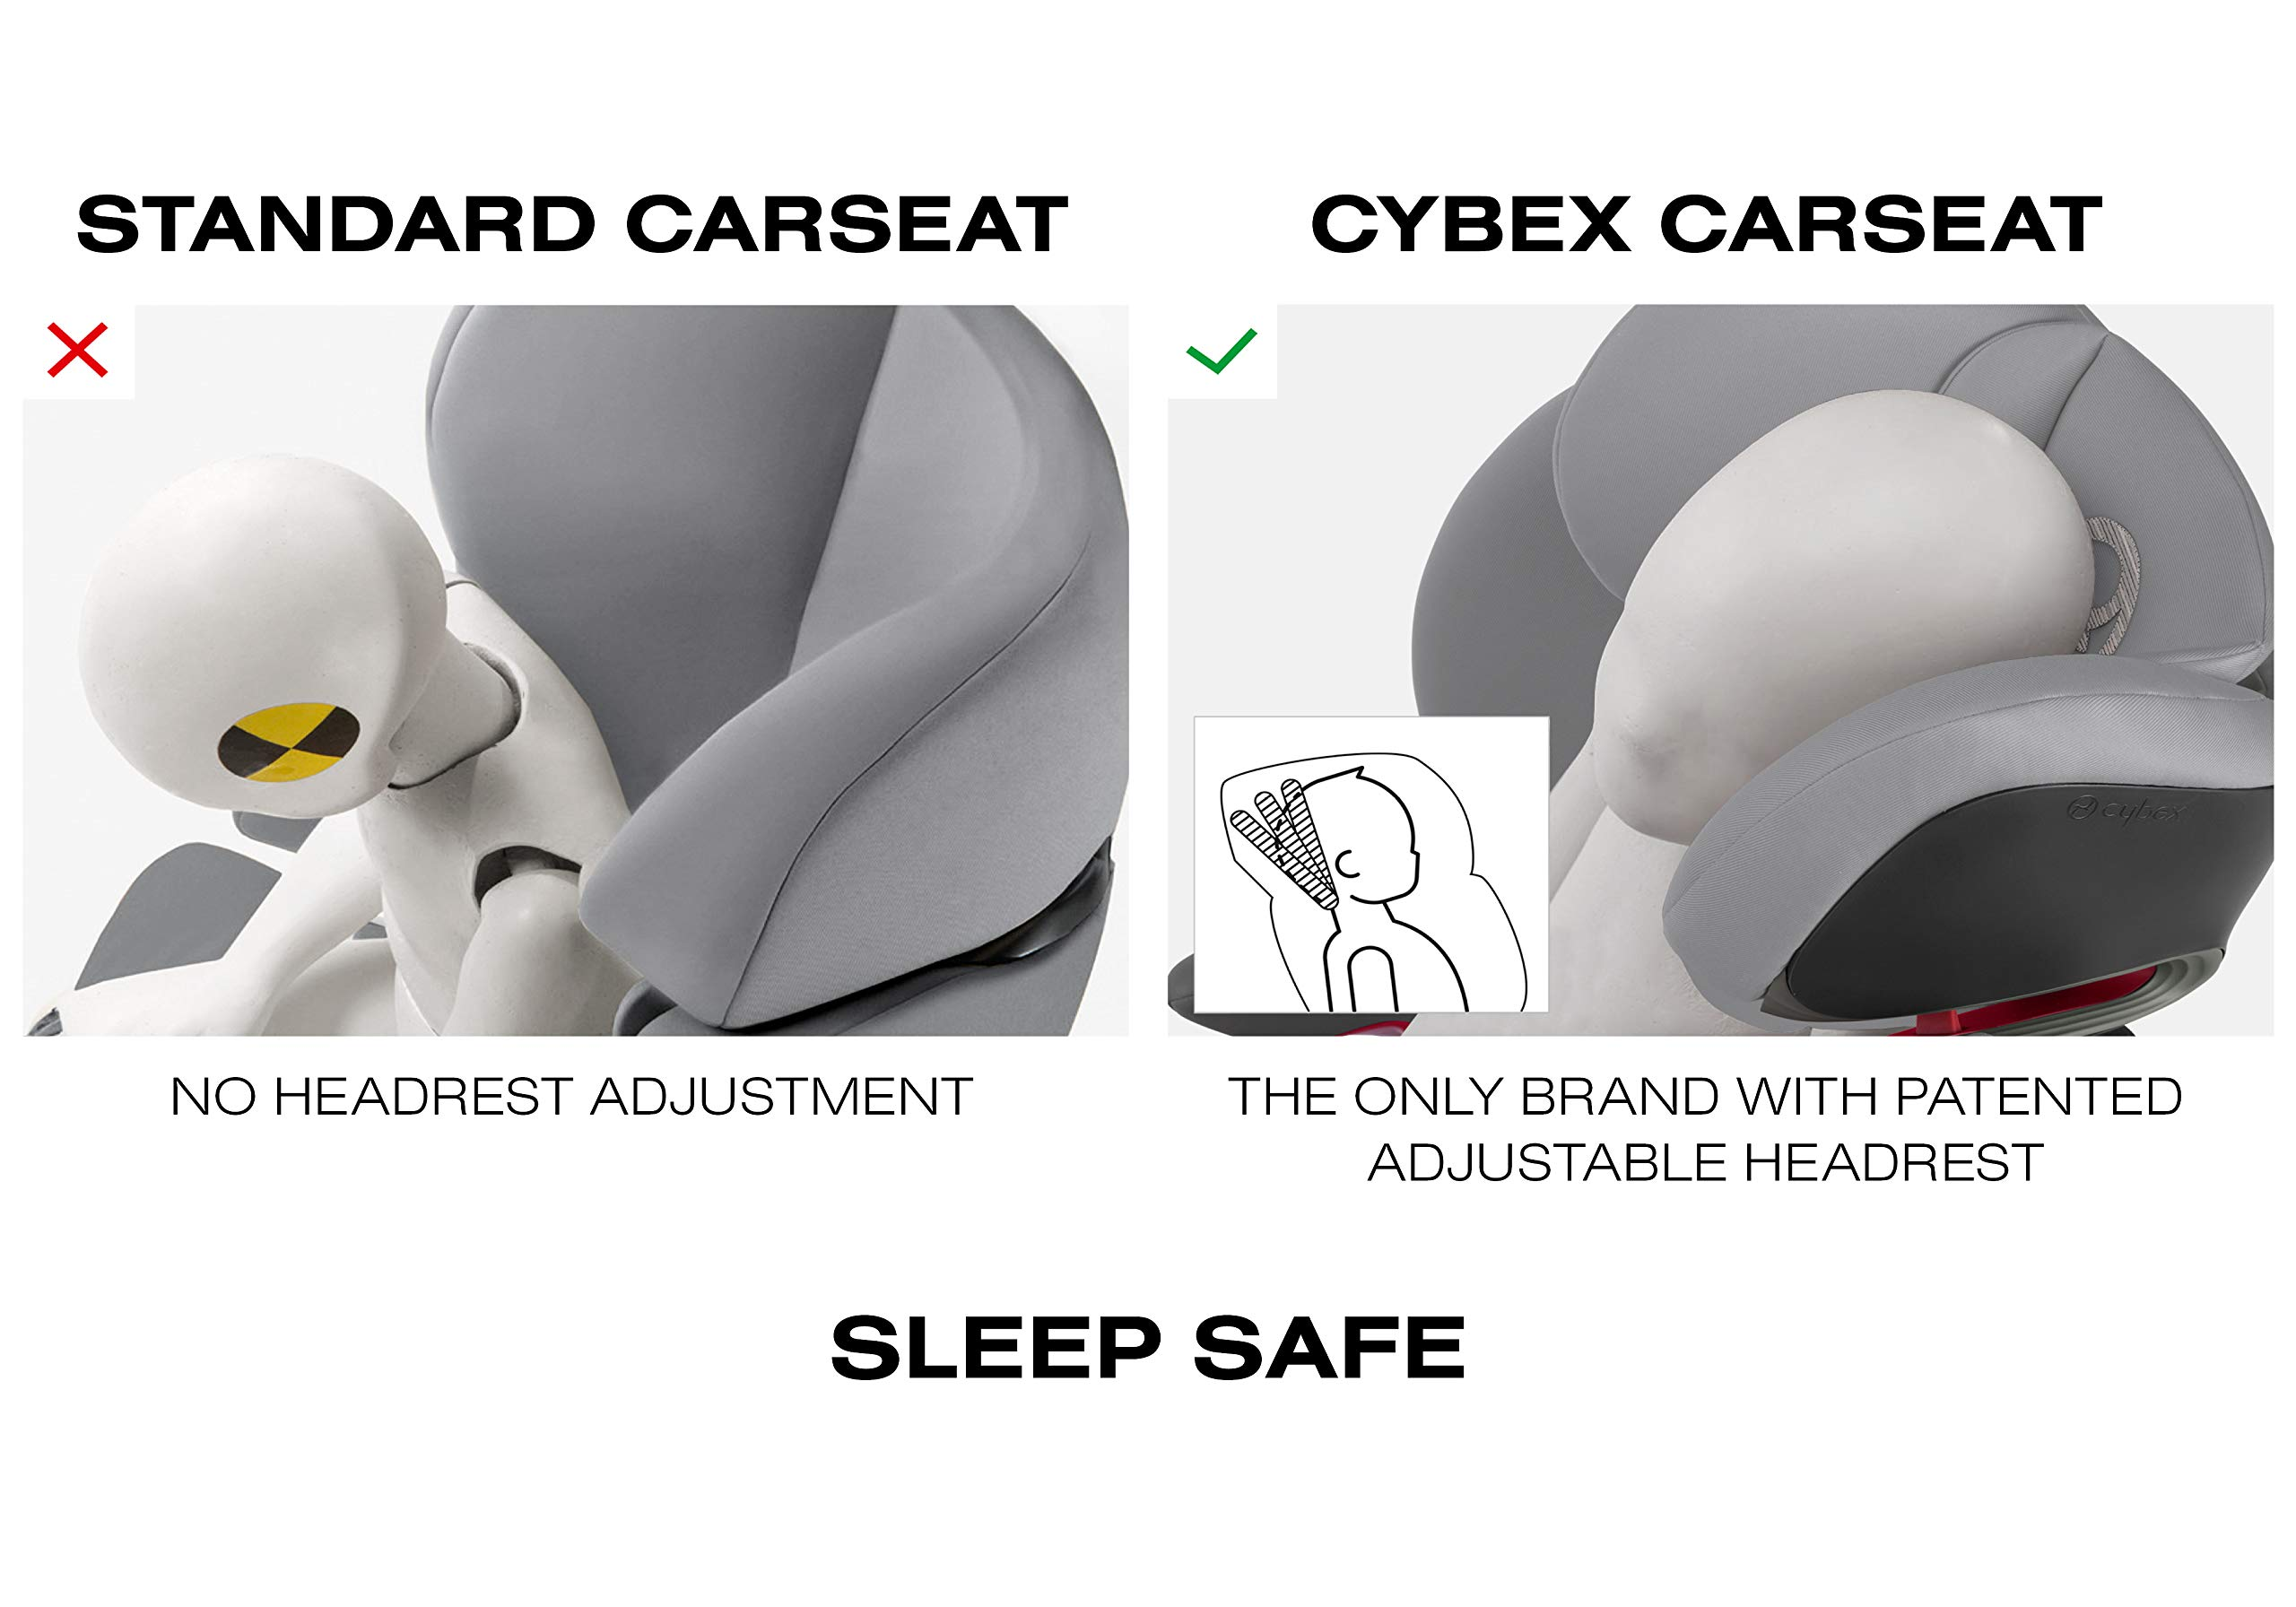 CYBEX Gold Solution S-Fix Child's Car Seat, For Cars with and without ISOFIX, Group 2/3 (15-36 kg), From approx. 3 to approx. 12 years, Lavastone Black  Group 2/3 high back booster seat. suitable from 15 - 36kg. designed to be used until a maximum height of 150cm, approximately 12 years. 3-position optimized reclining headrest prevents the child's head from tipping forwards, and integrated ventilation system keeps them cool. The integrated lisp. system offers increased safety in the event of a side-impact collision by reducing the forces by approximately 25%. 2